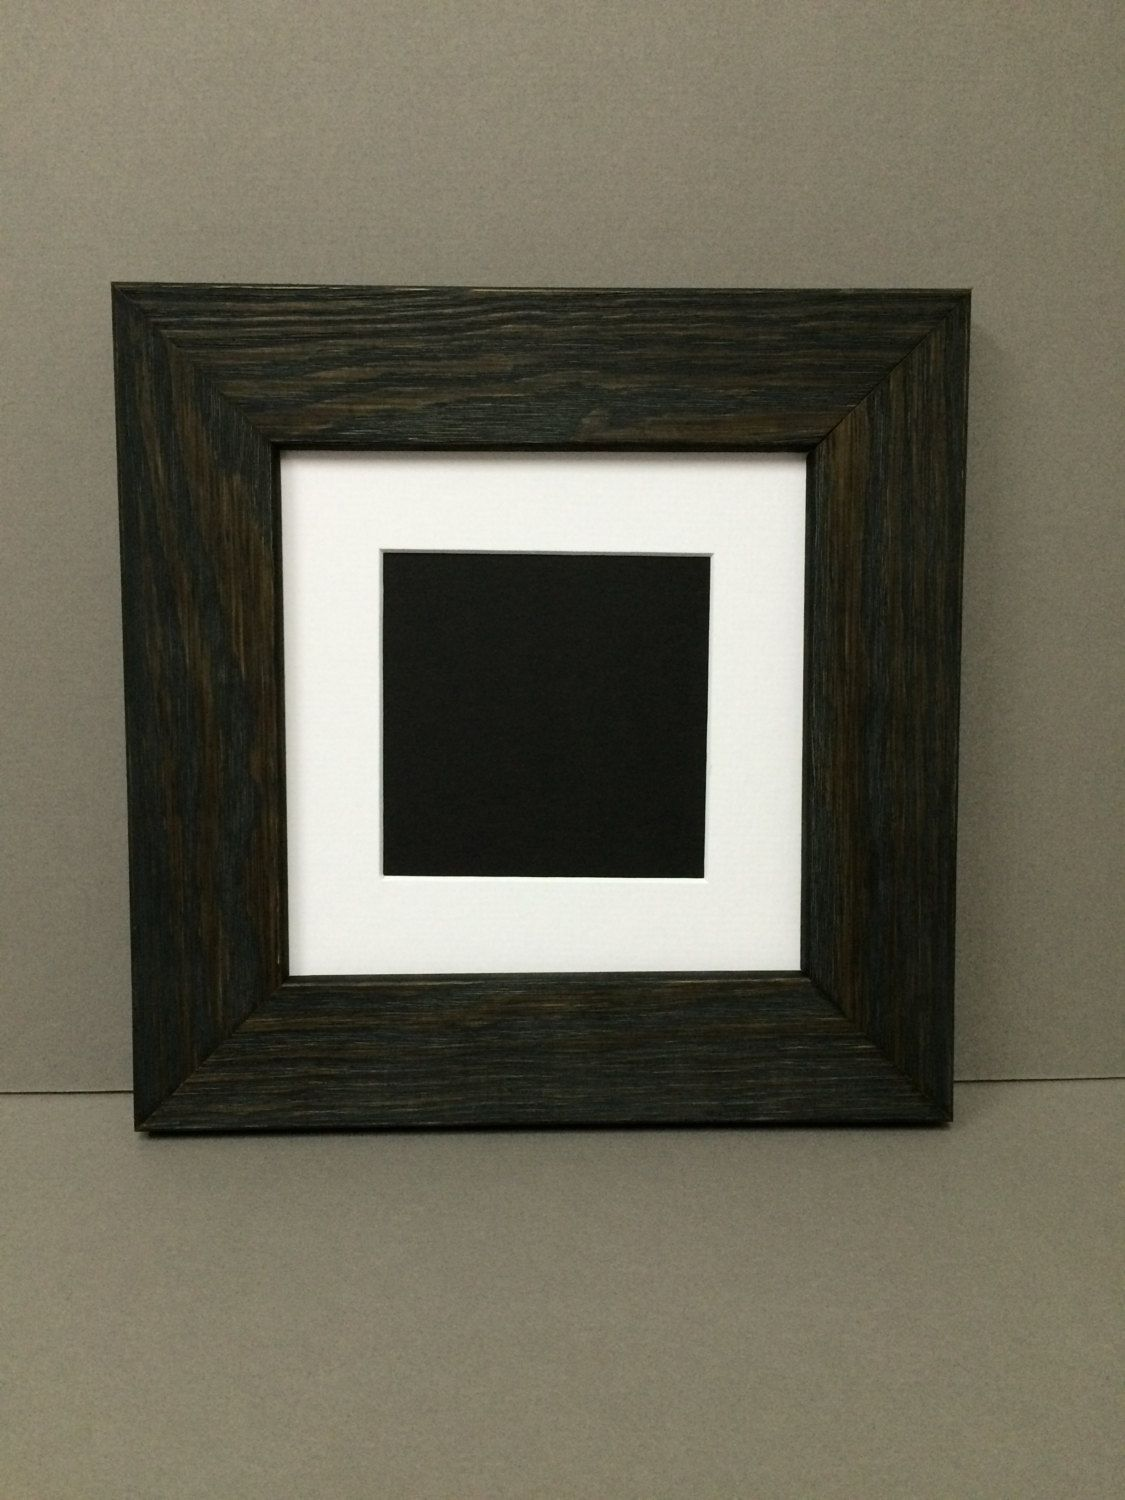 10x10 Square Rustic Black Black Picture Frame With White Mat For 6x6 Picture By Bux1picturematting On Etsy Htt Rustic Black Picture Frames Black Picture Frames